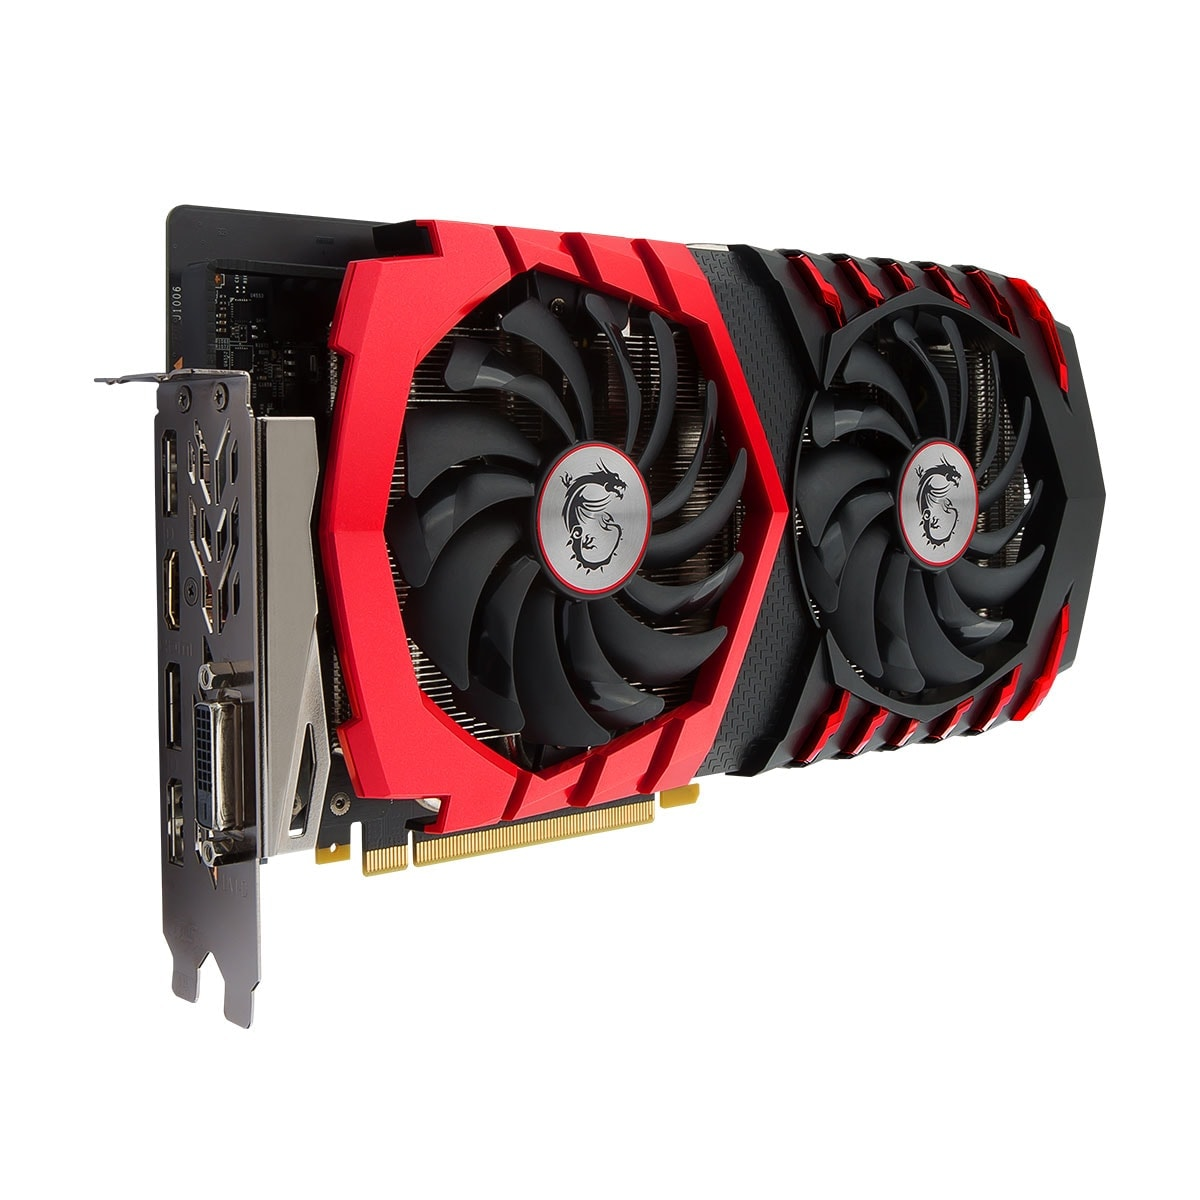 MSI GeForce GTX 1060 GAMING X 6G  (GeForce GTX 1060 GAMING X 6G ) - Achat / Vente Carte Graphique sur Cybertek.fr - 3